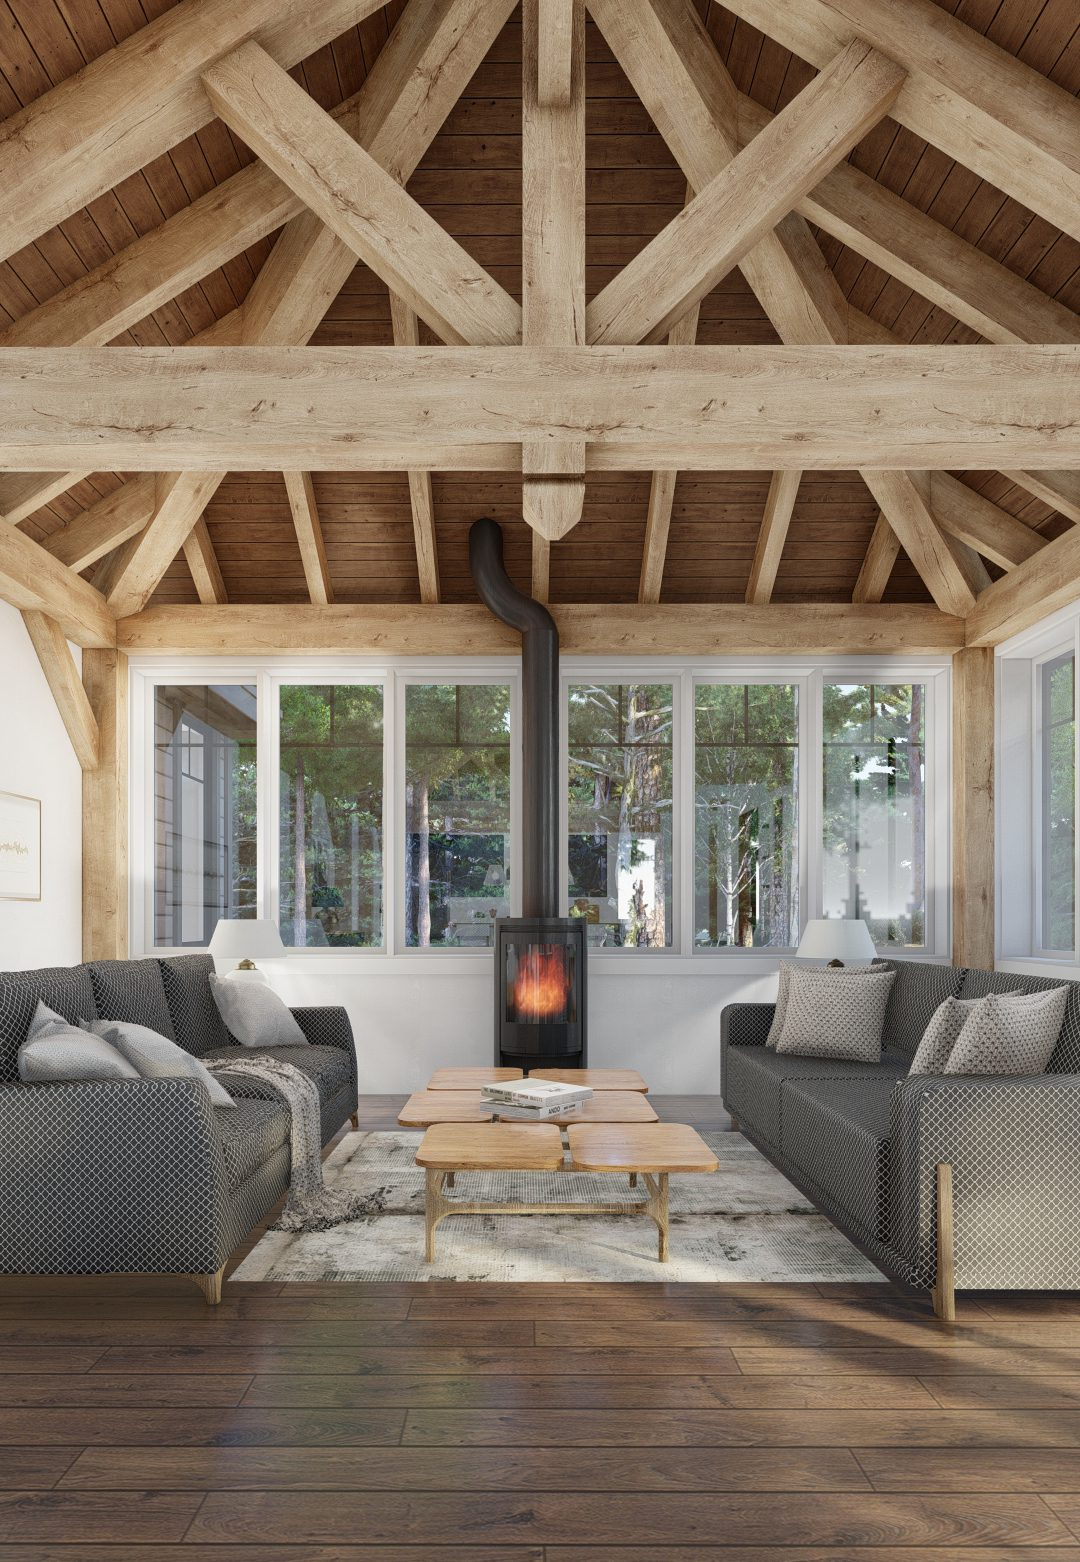 Normerica Timber Homes, Timber Frame, House Plans, The Herridge 3979, Interior, Living Room, Fireplace, Cathedral Ceiling